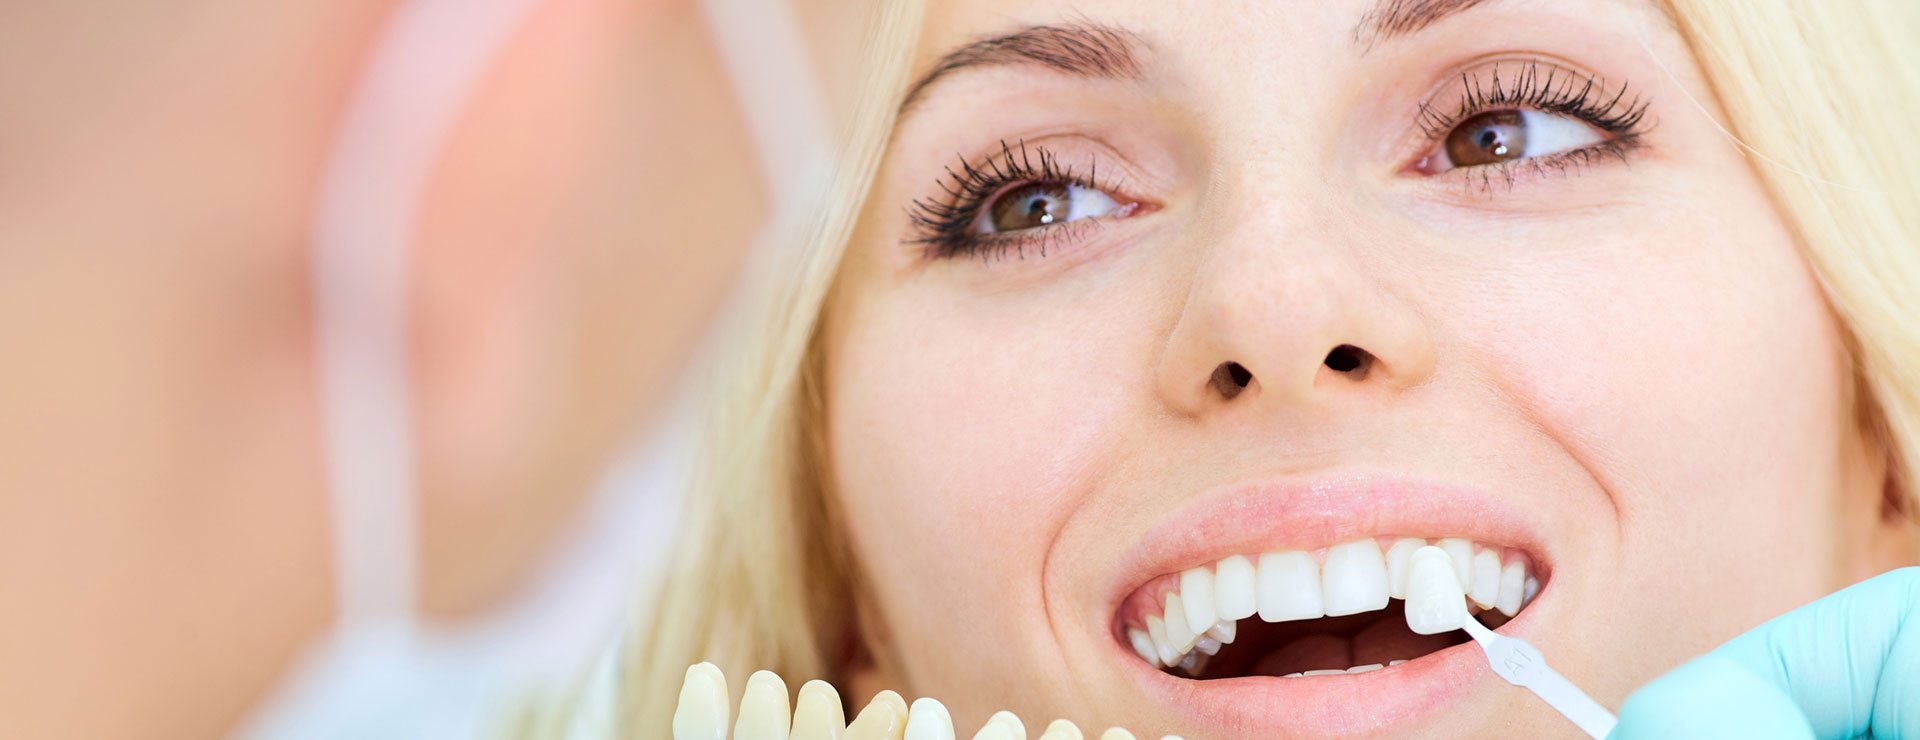 Dentist matching veneer with a patient